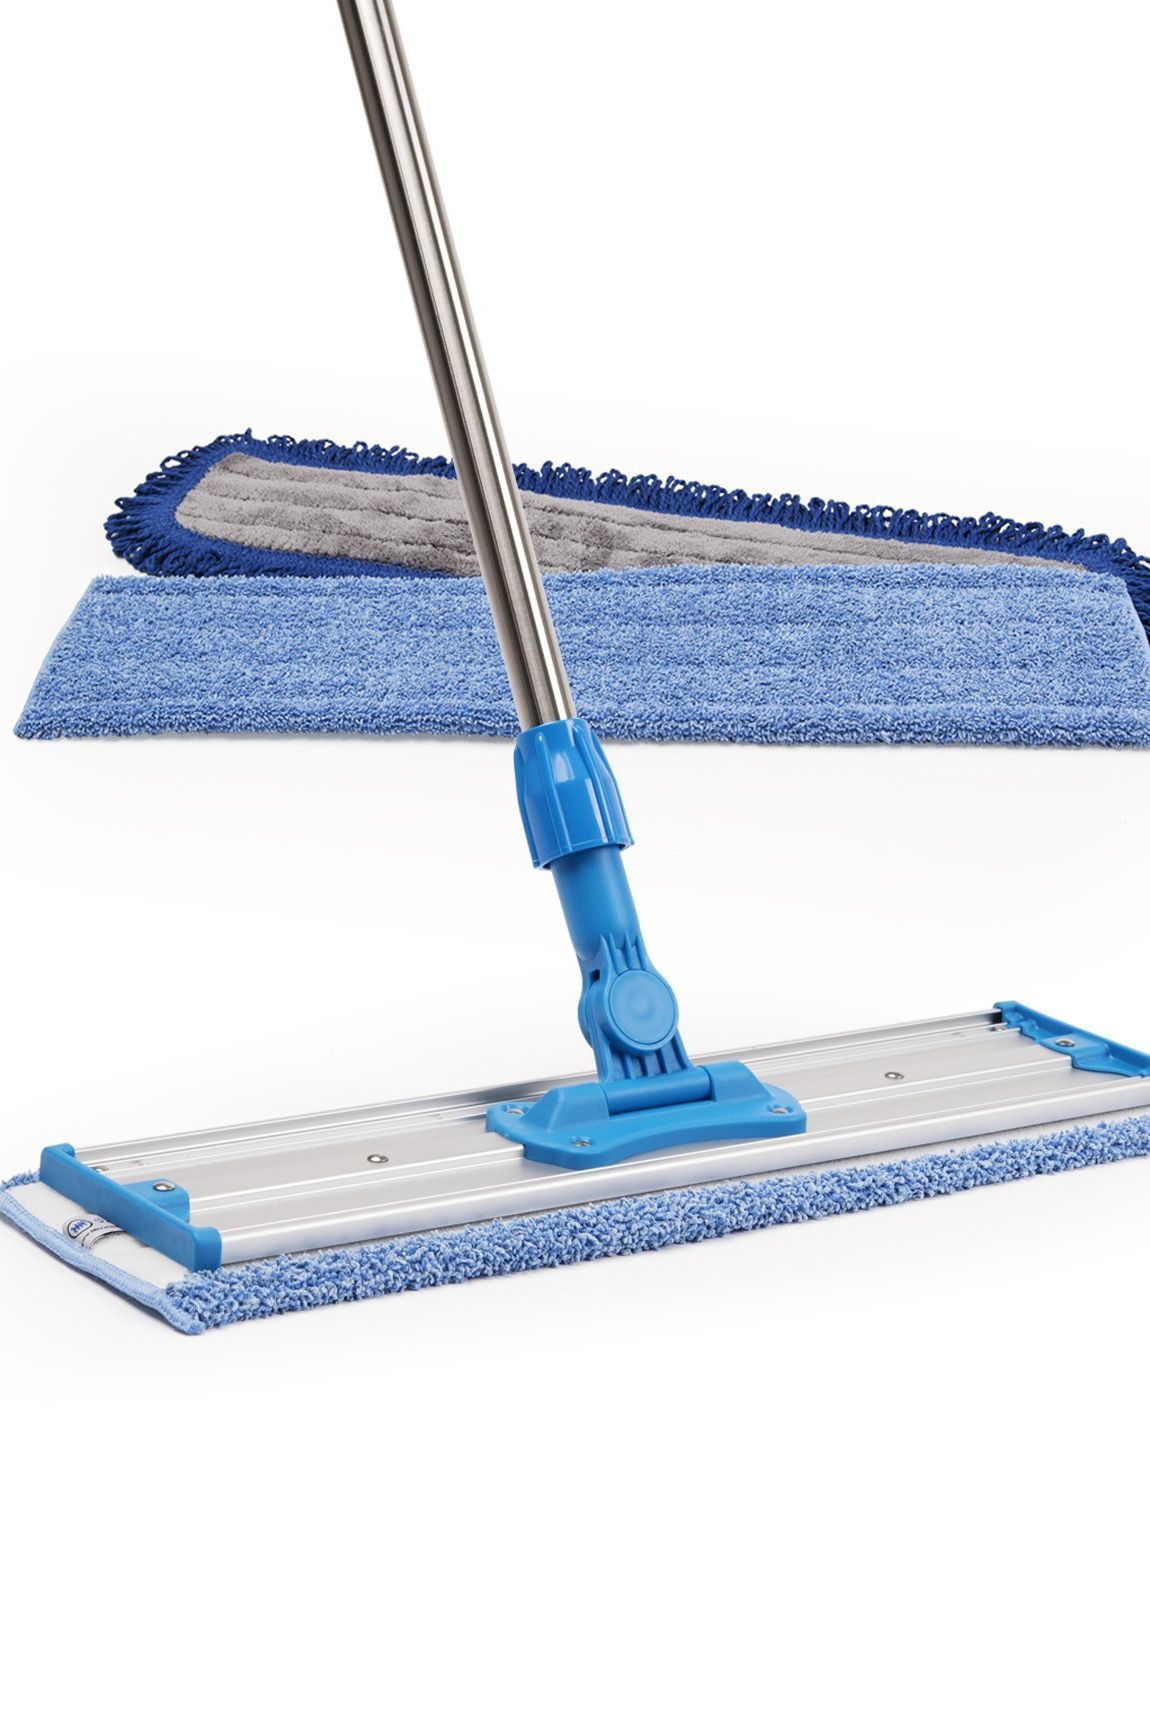 5 Best Cleaning Supplies - The Only Supplies You Need to ...